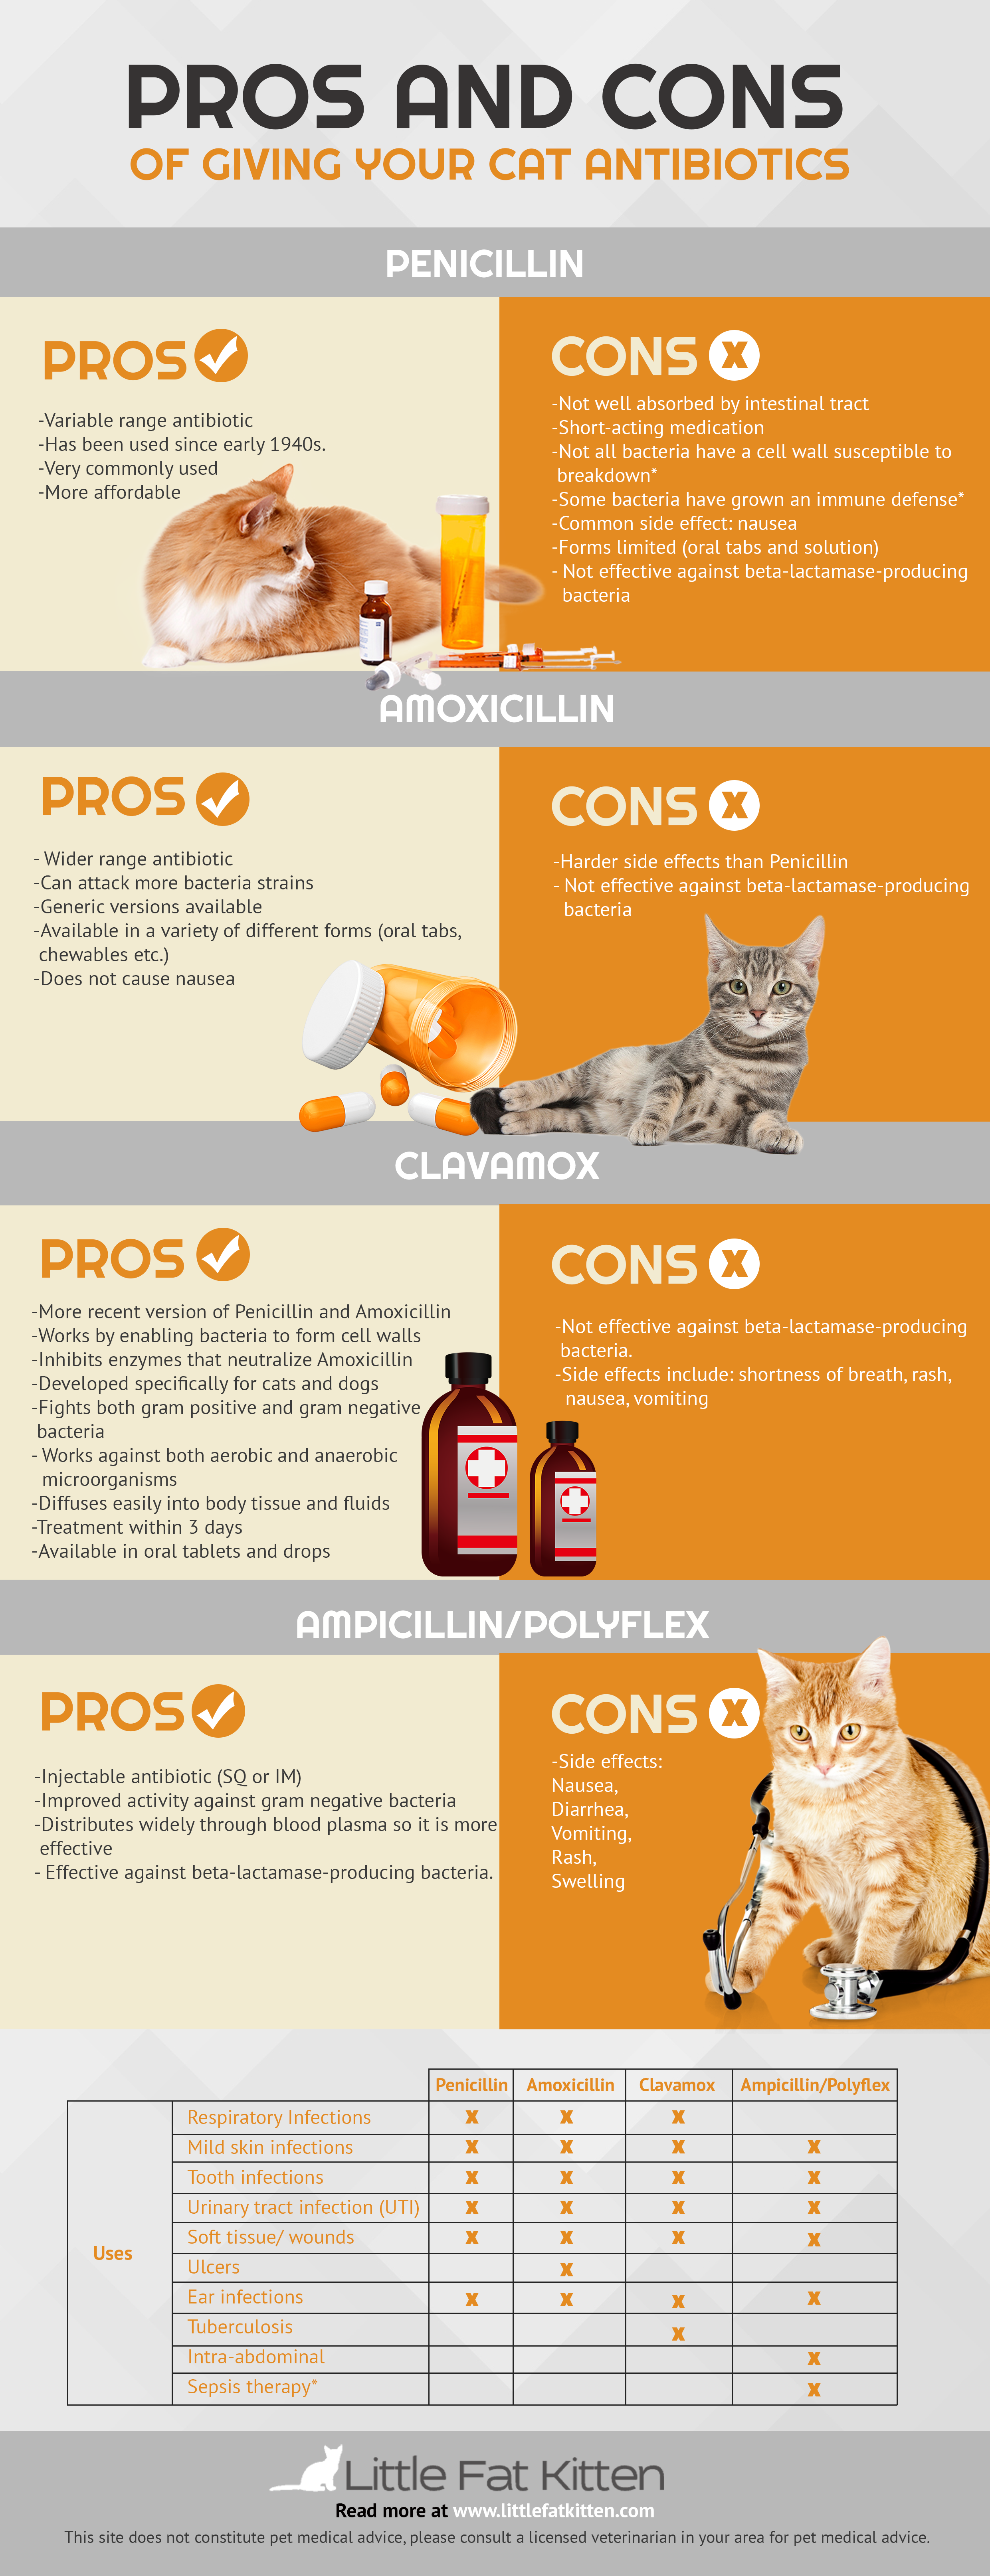 pros and cons of giving your cat penicilin